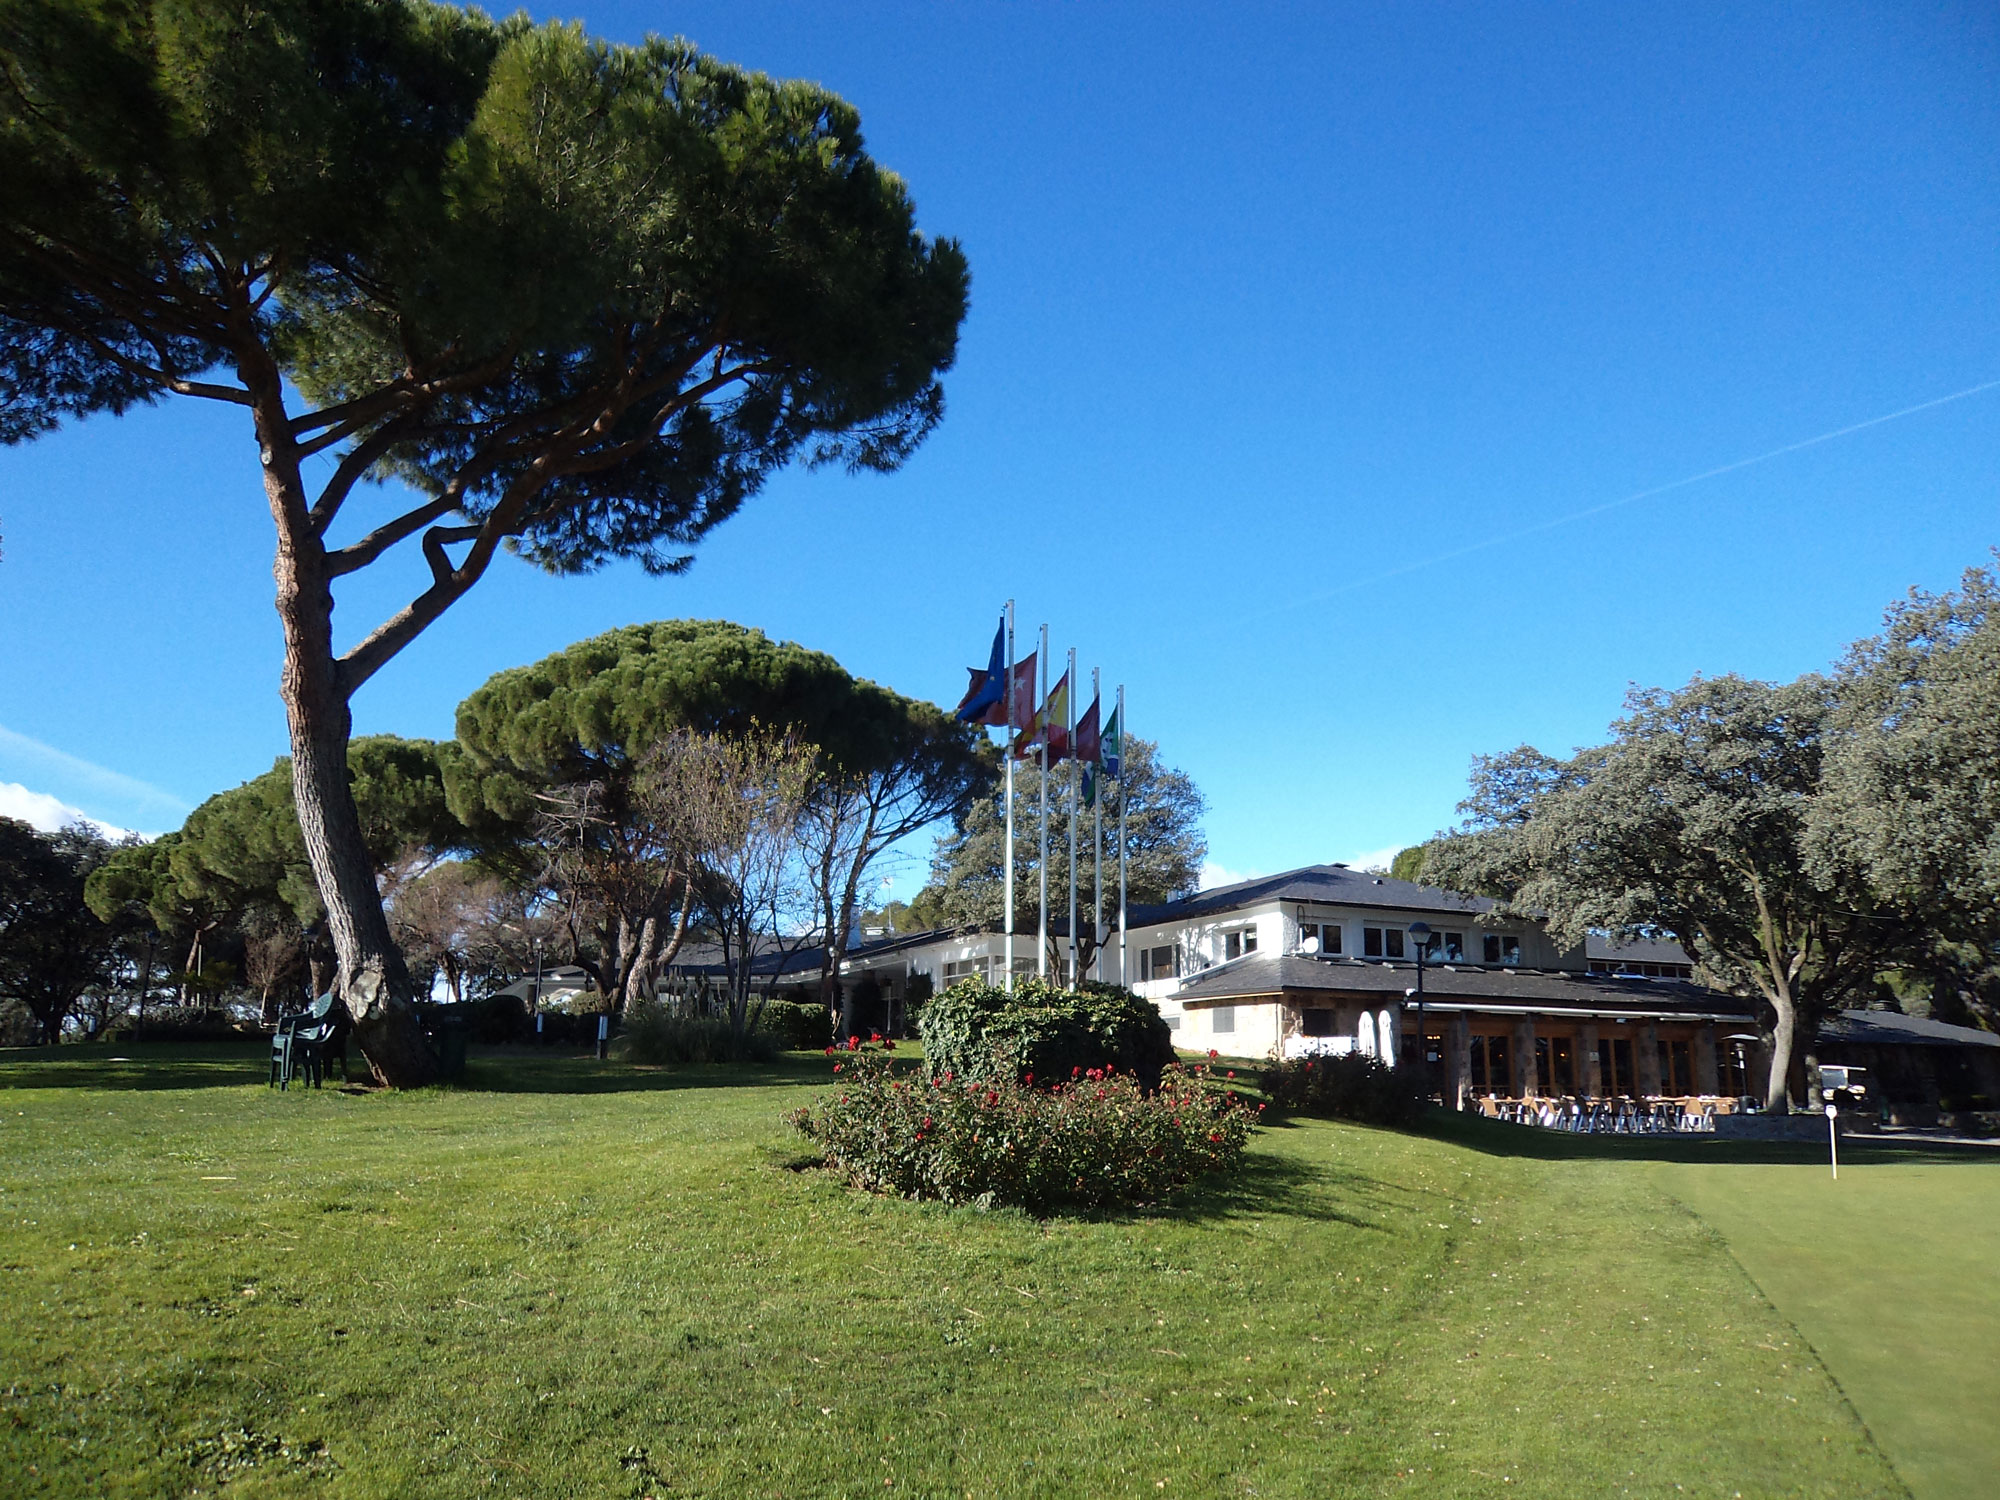 Chalet de Golf del Club de Campo Villa de Madrid.